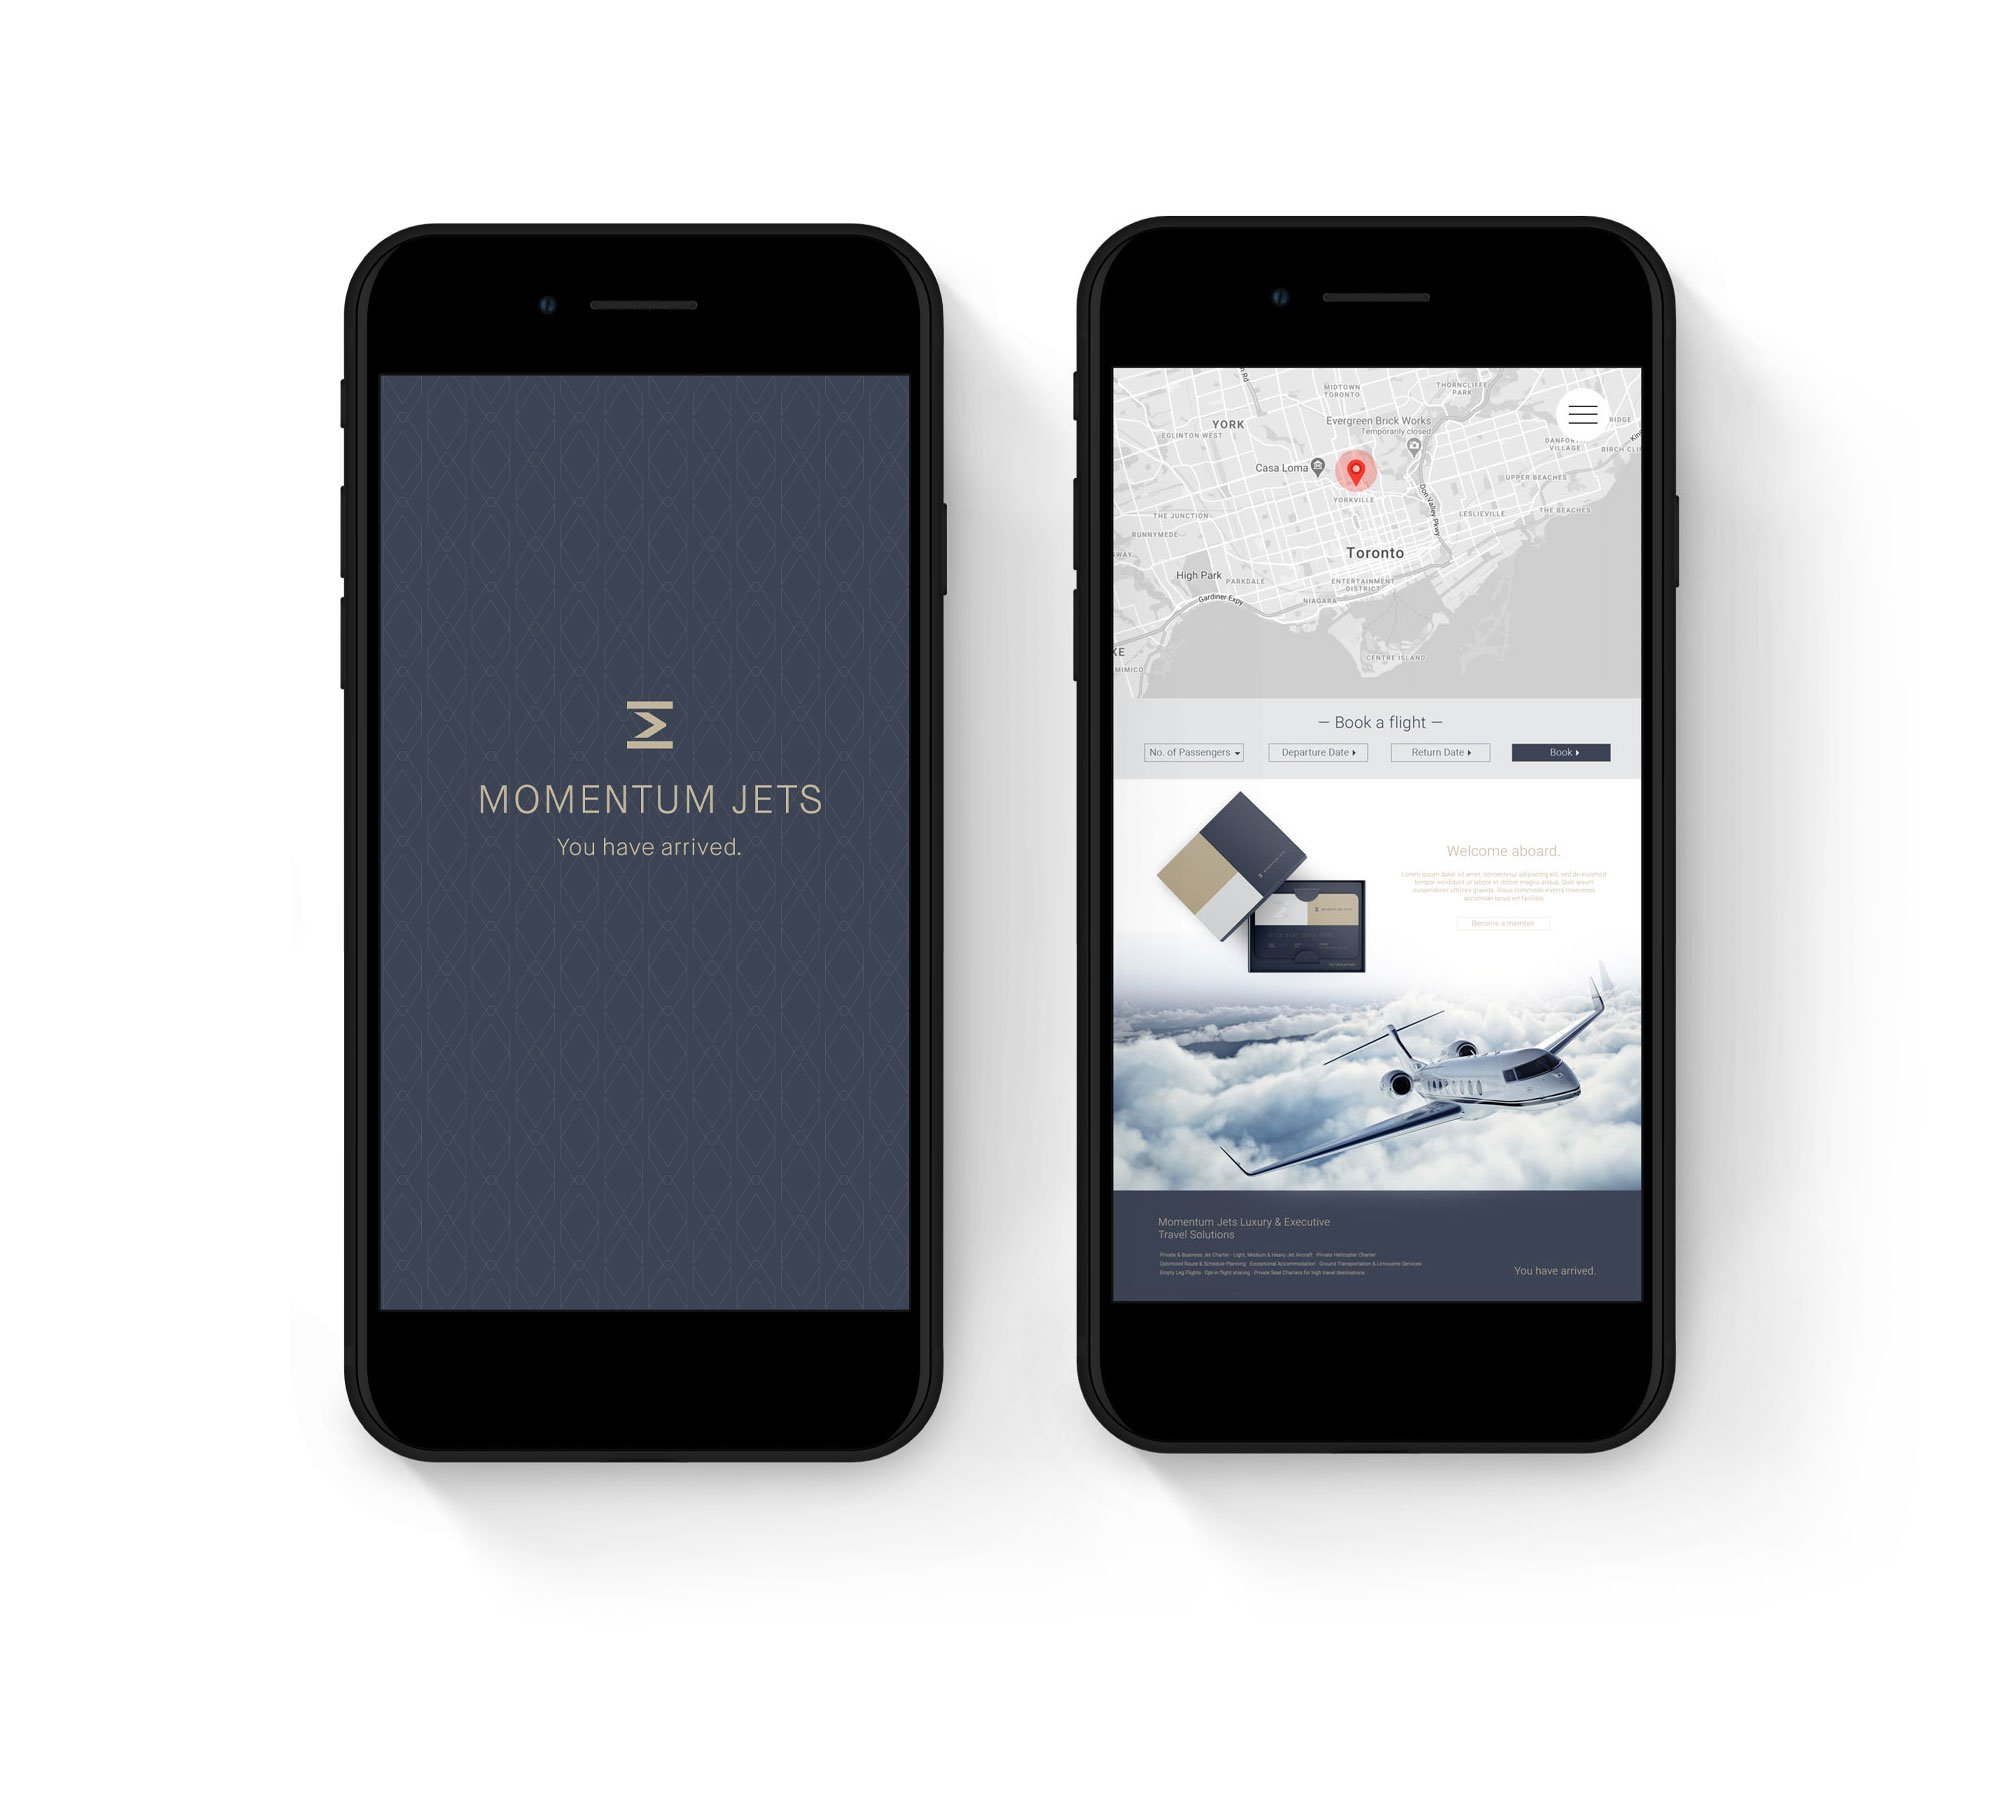 Private jet company branding booking app screen